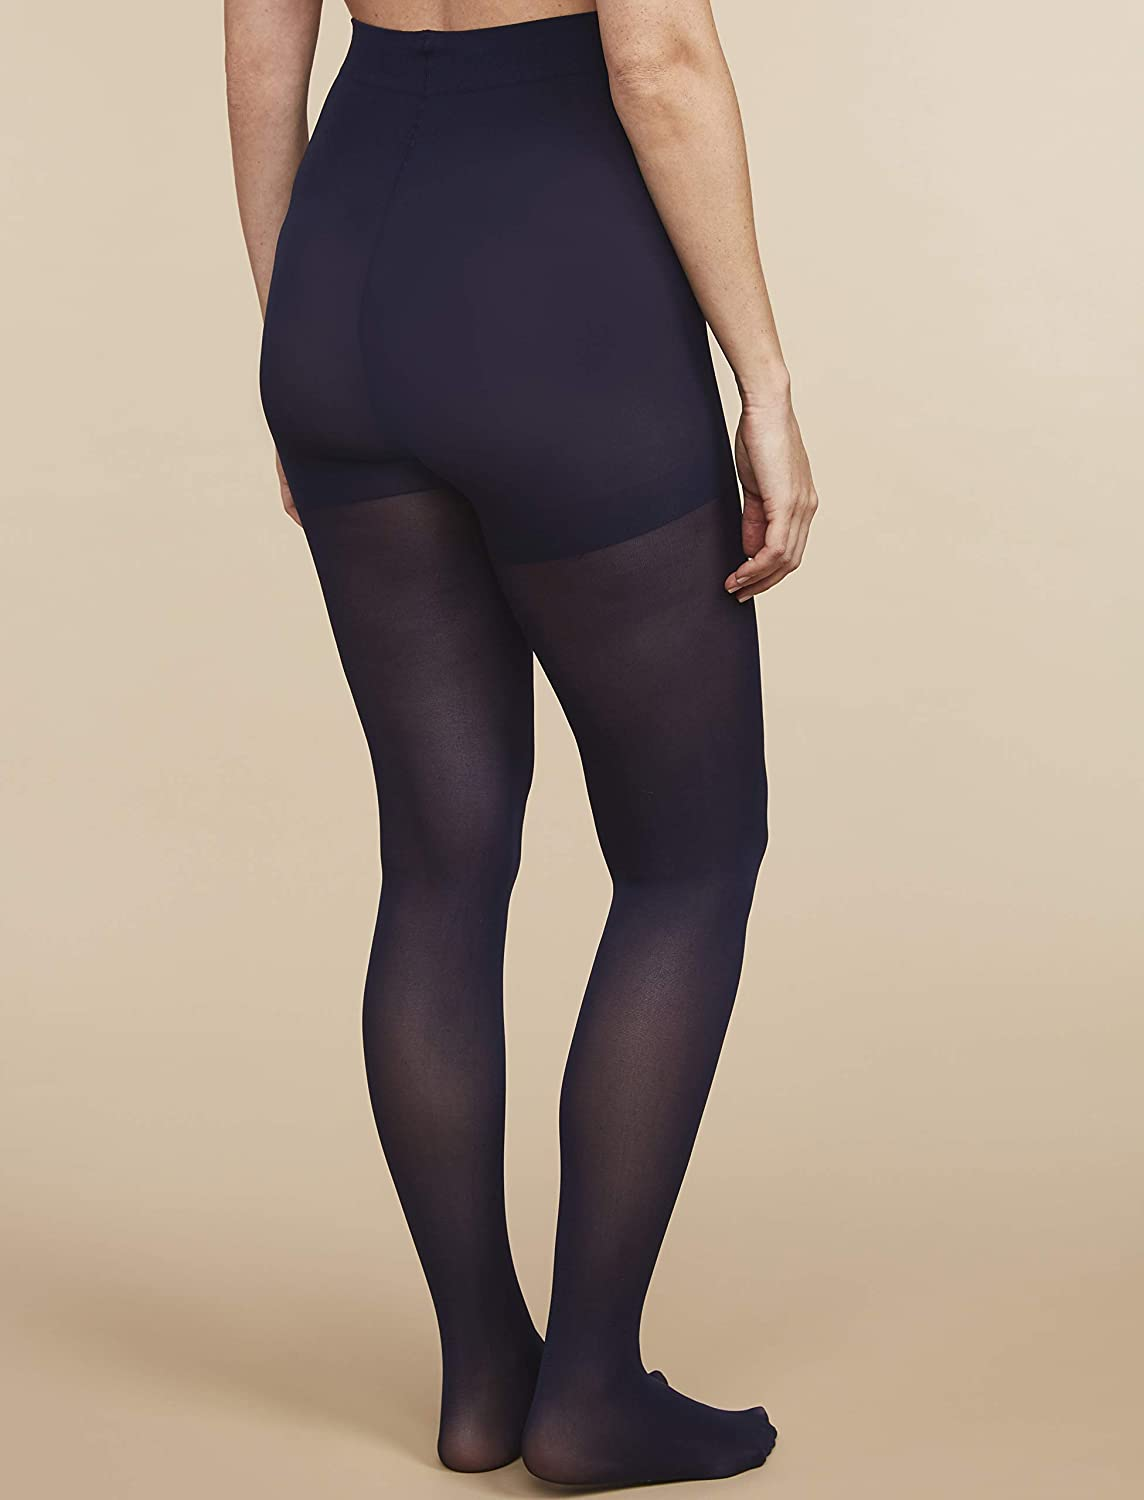 Mama Spanx Sheer Maternity Pantyhose   A Pea in the Pod